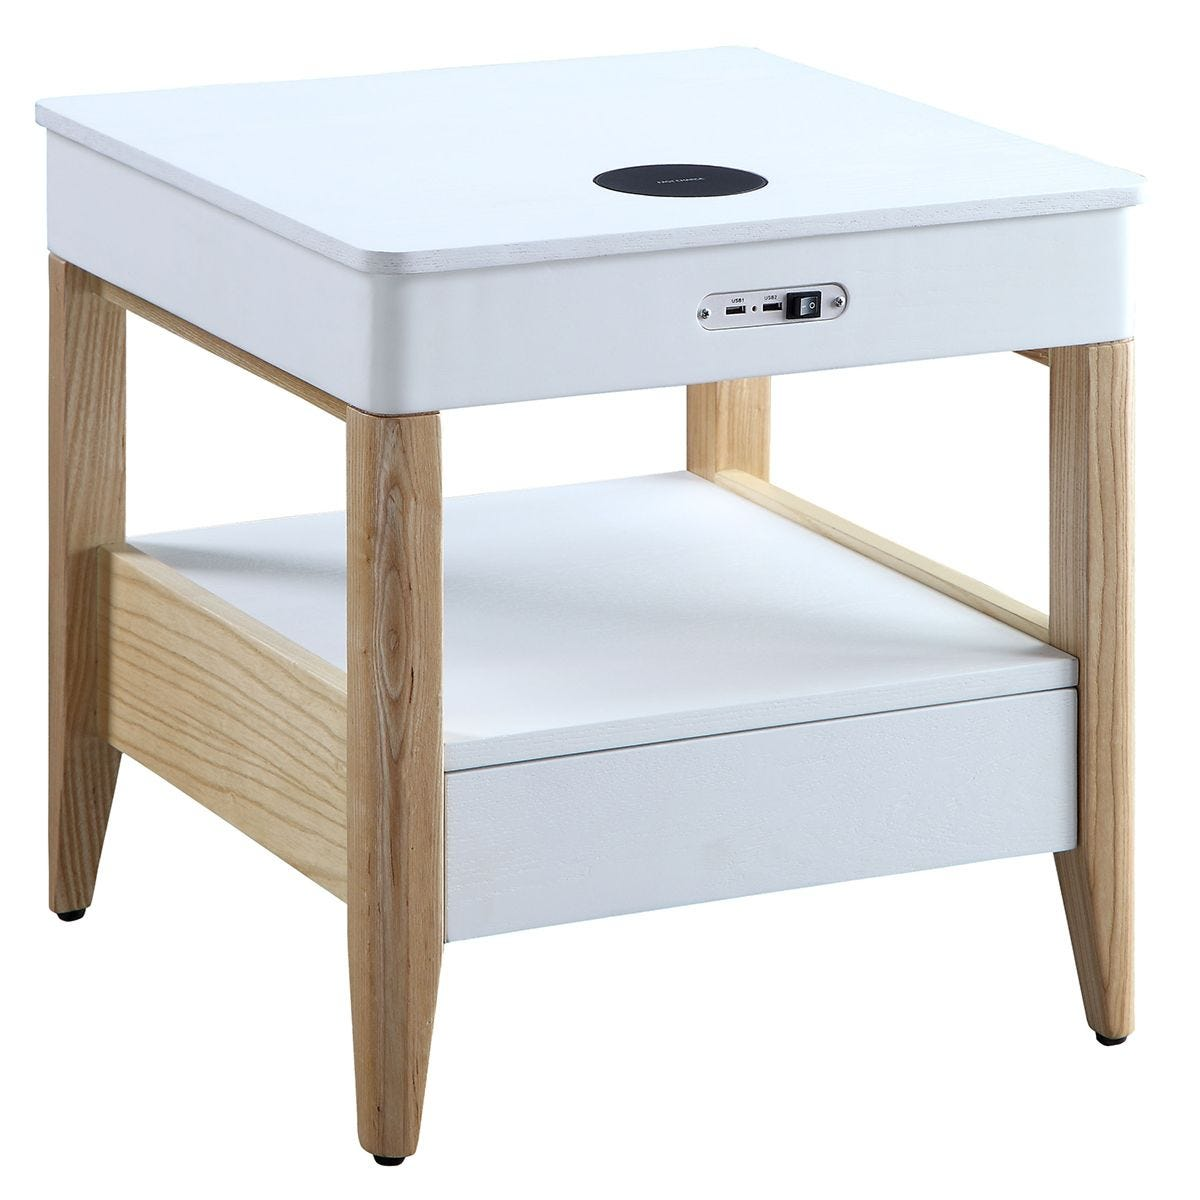 Jual San Francisco Ash/White Smart Bedside Table Wireless Charger - Ash Legs